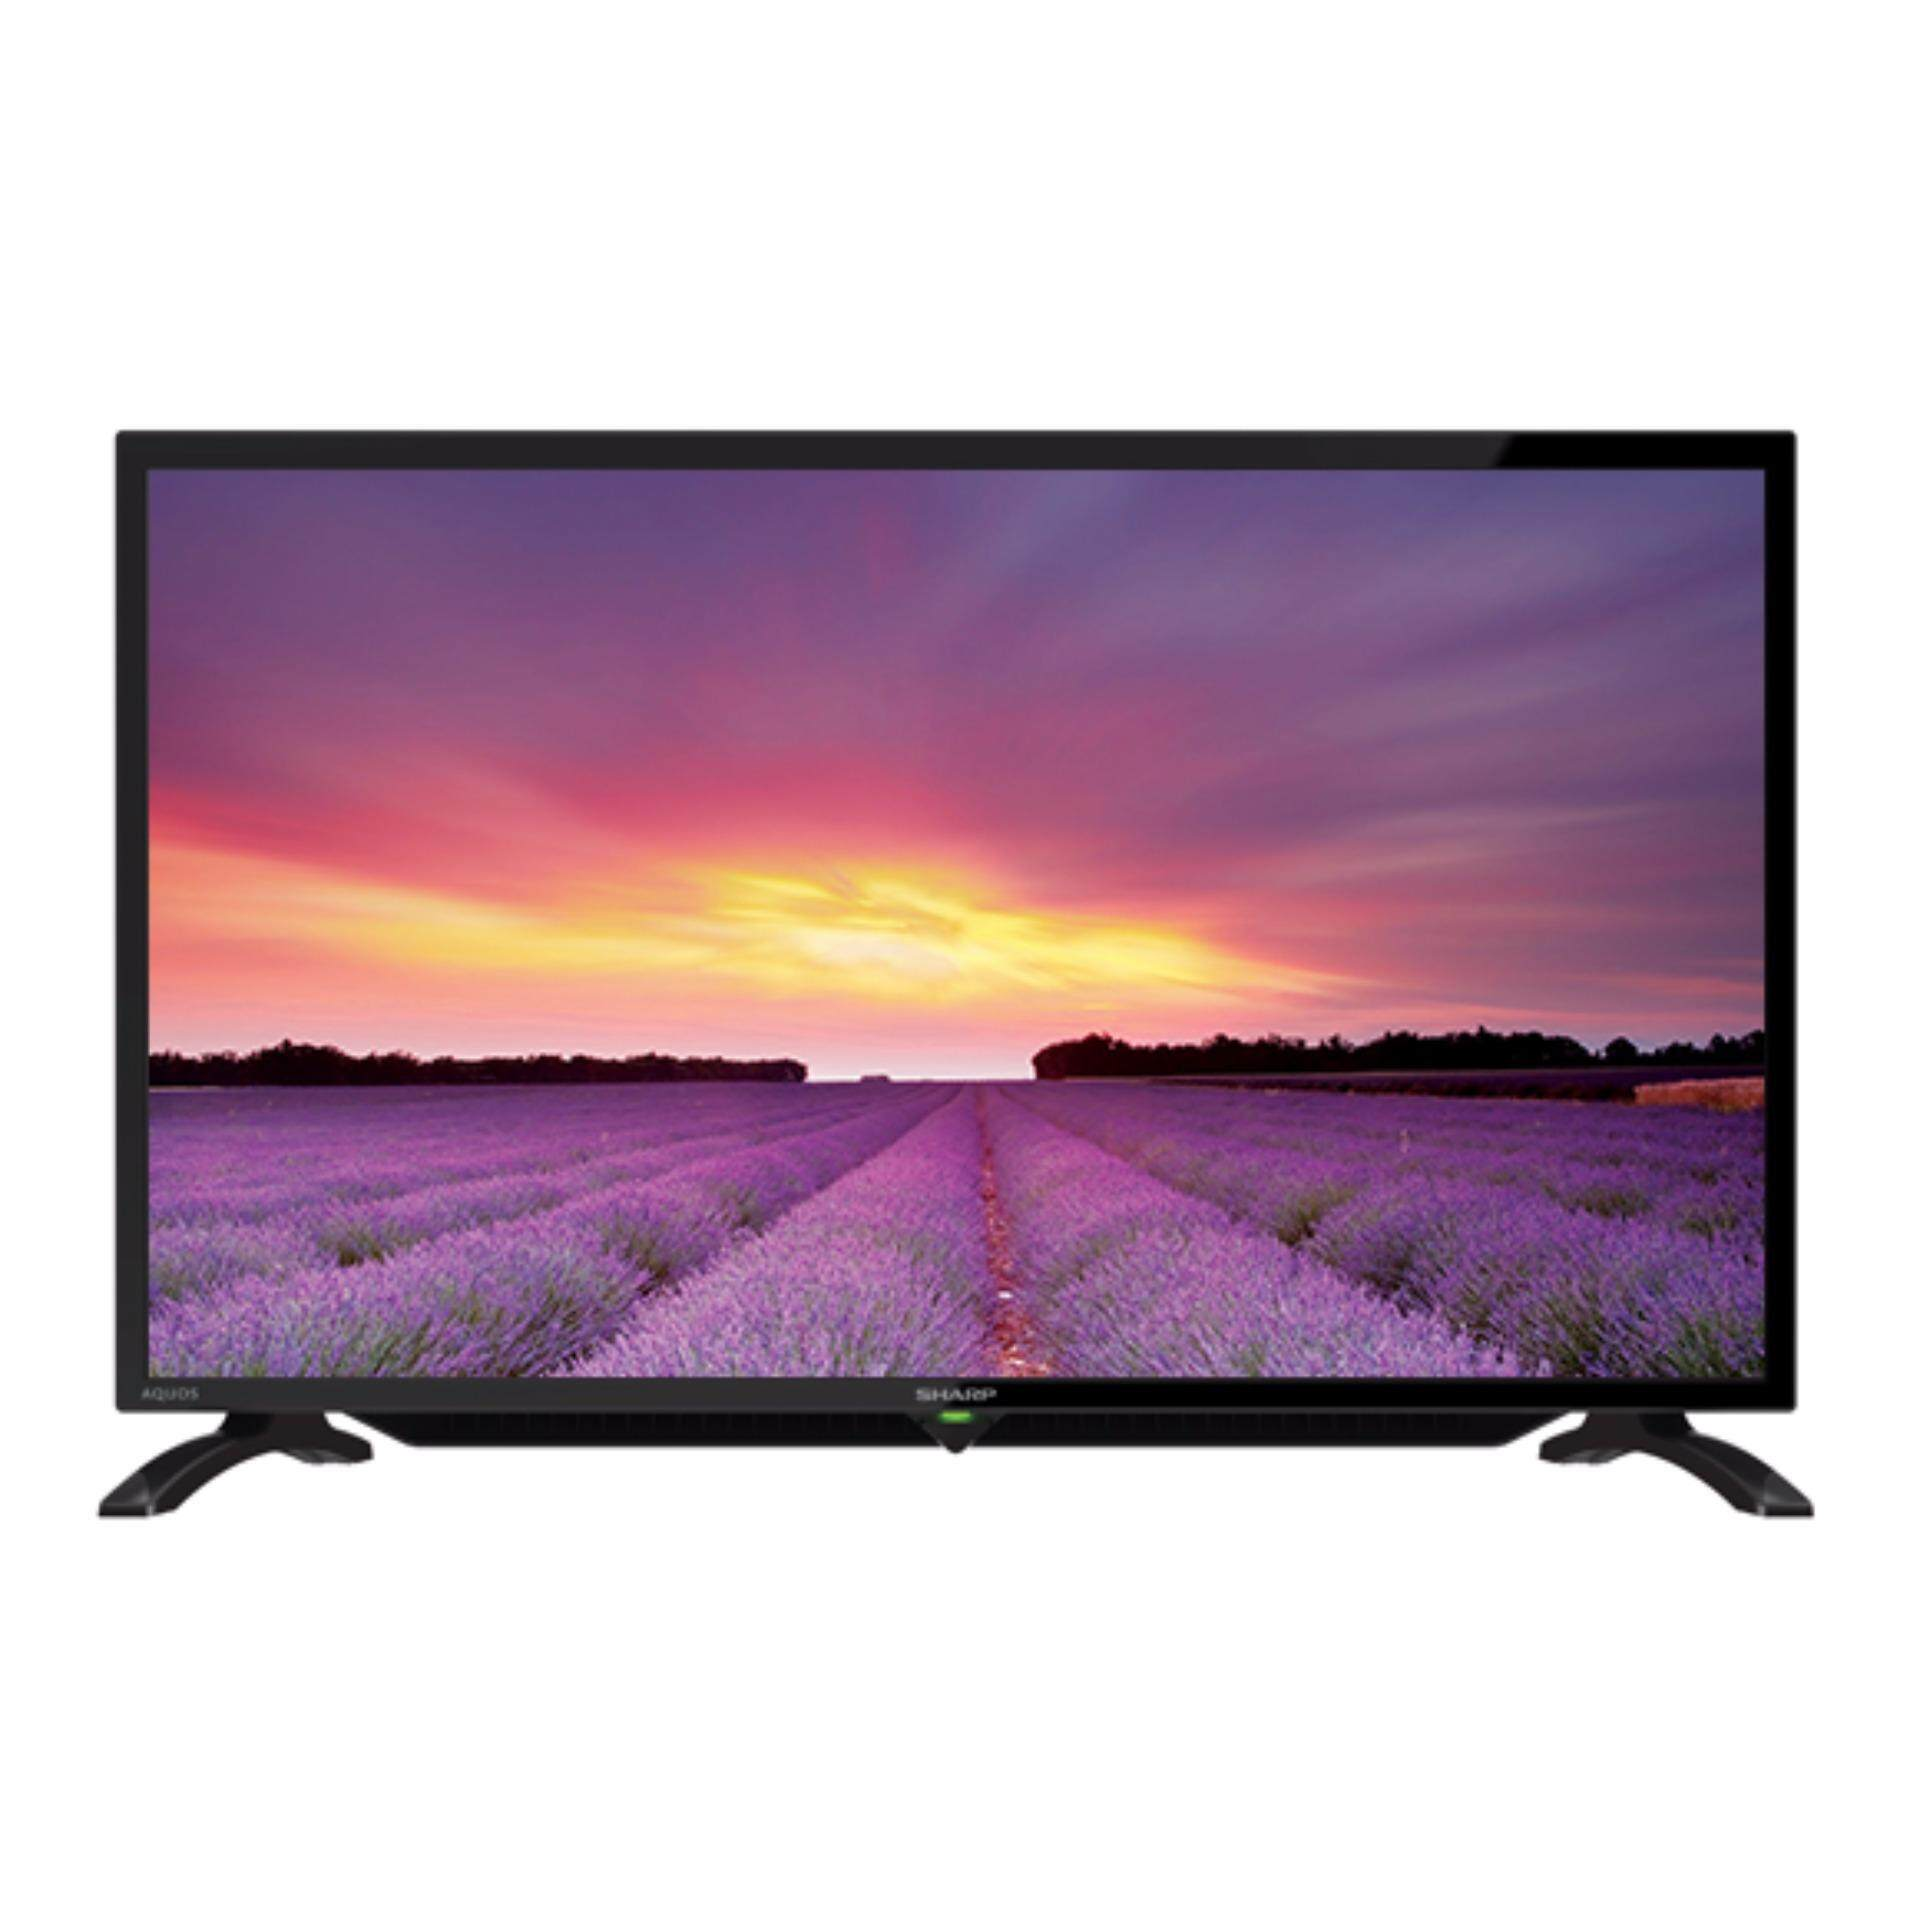 "Sharp 32"" HD READY LED TV LC32LE280X DVB-T2 (With USB Video, Photo & Music)"